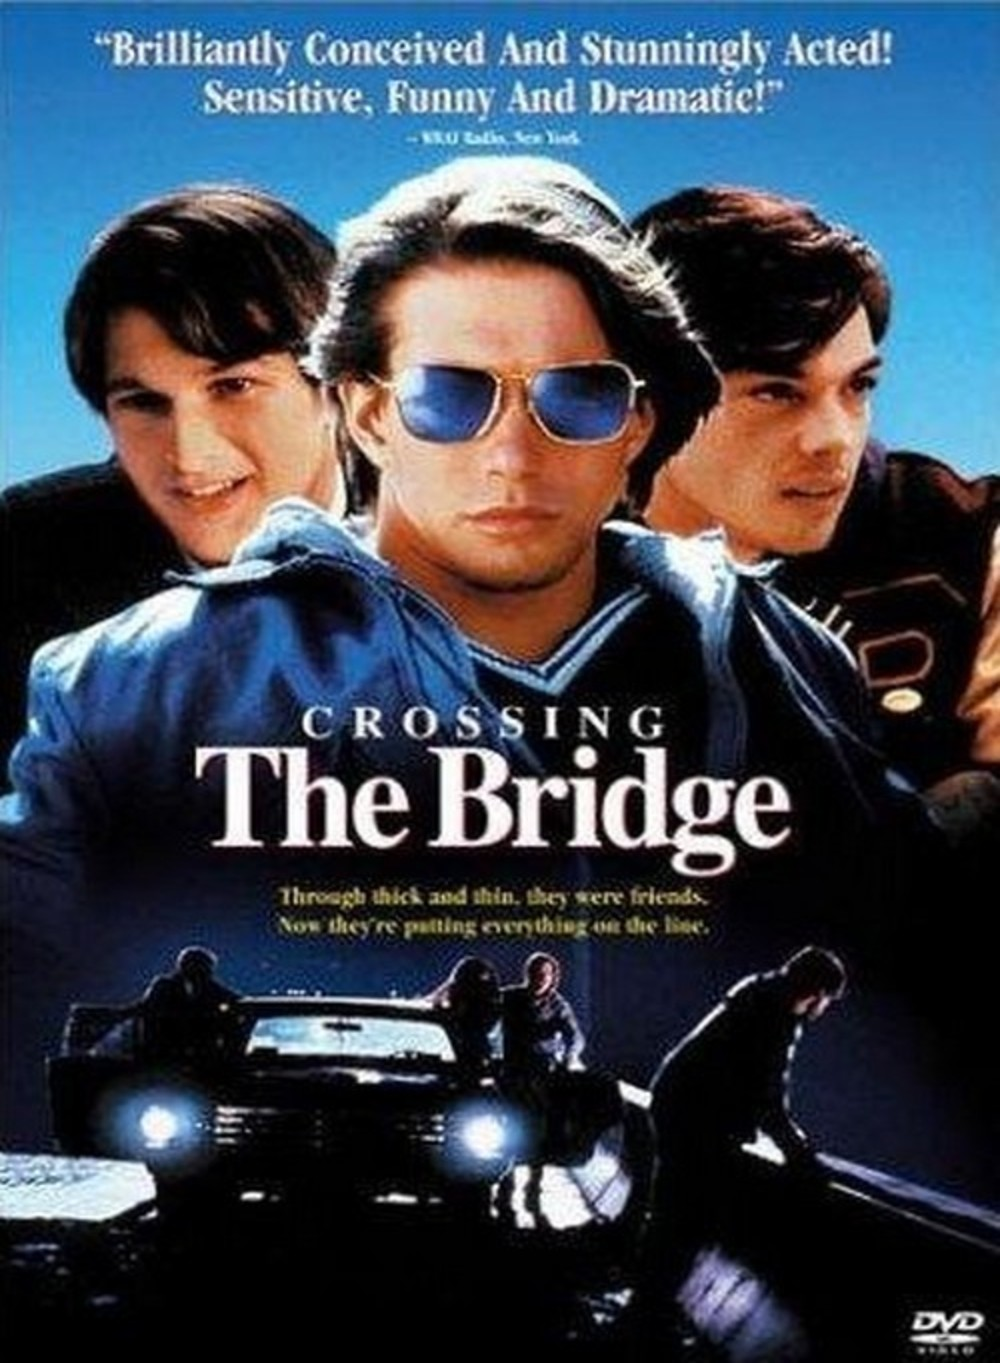 crossing the bridge affiche poster disneyt touchstone pictures